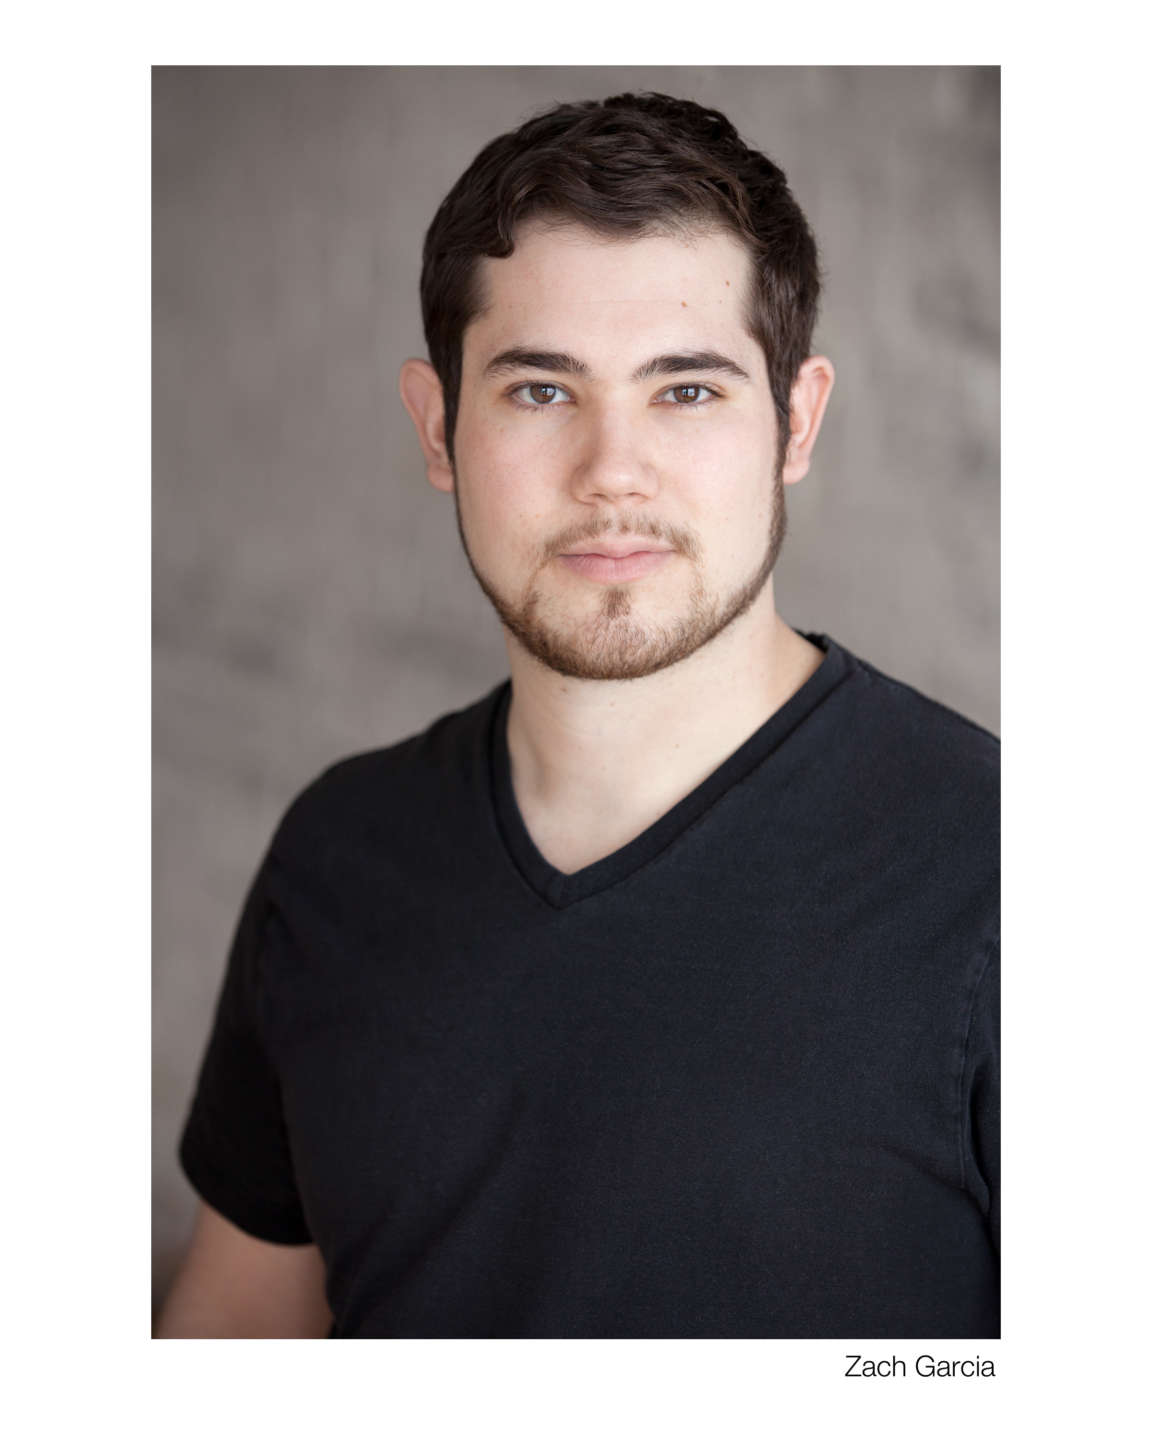 Headshot of actor Zach Garcia